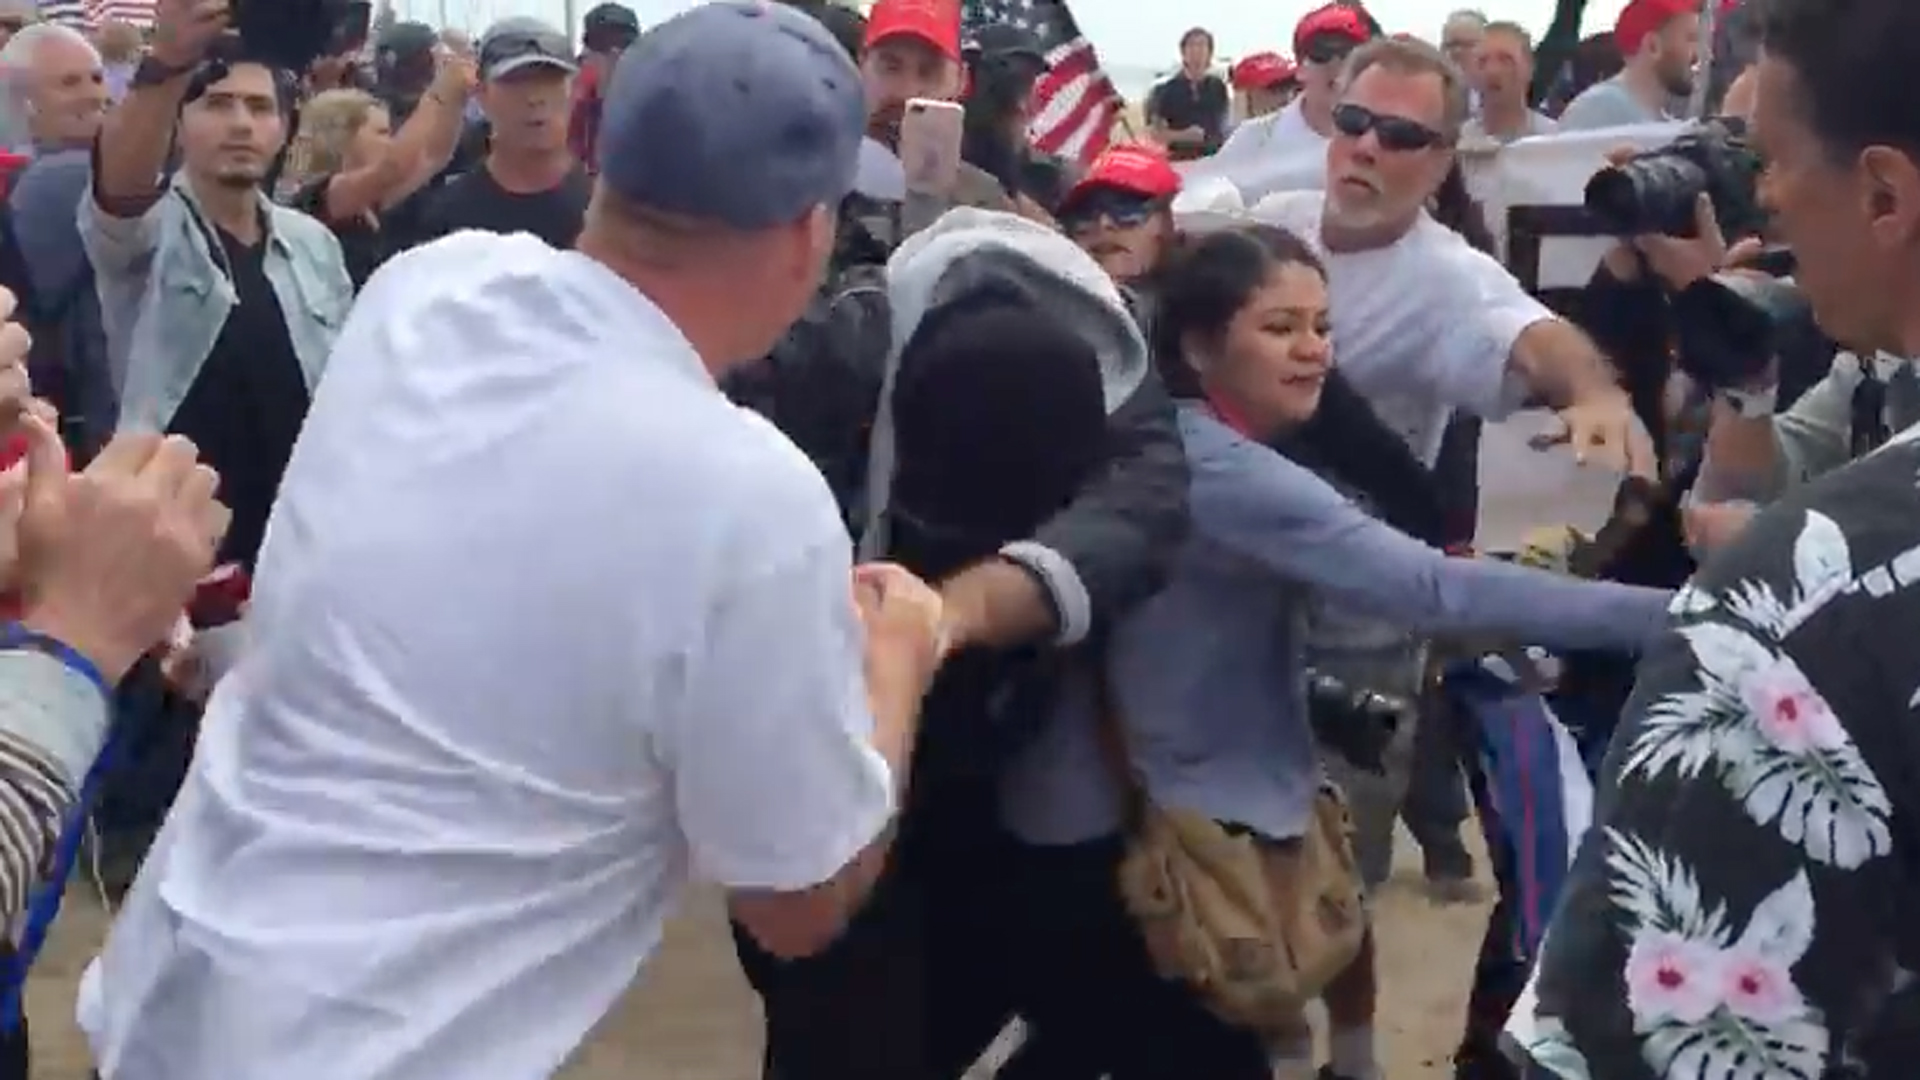 A fight broke out during a pro-Trump rally in Huntington Beach on March 25, 2017. (Credit: KTLA)